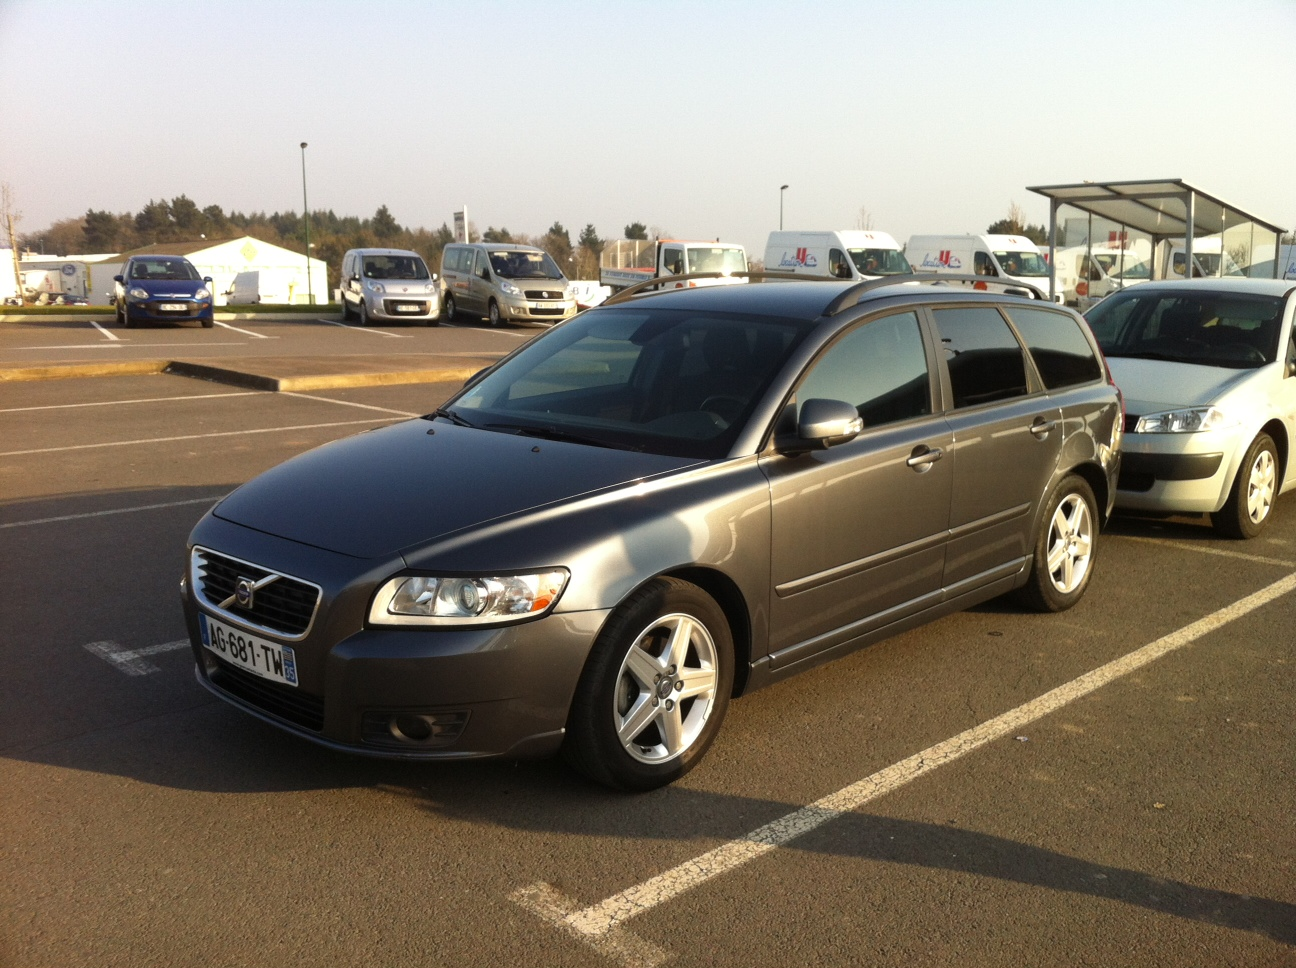 avis sur la volvo v50. Black Bedroom Furniture Sets. Home Design Ideas